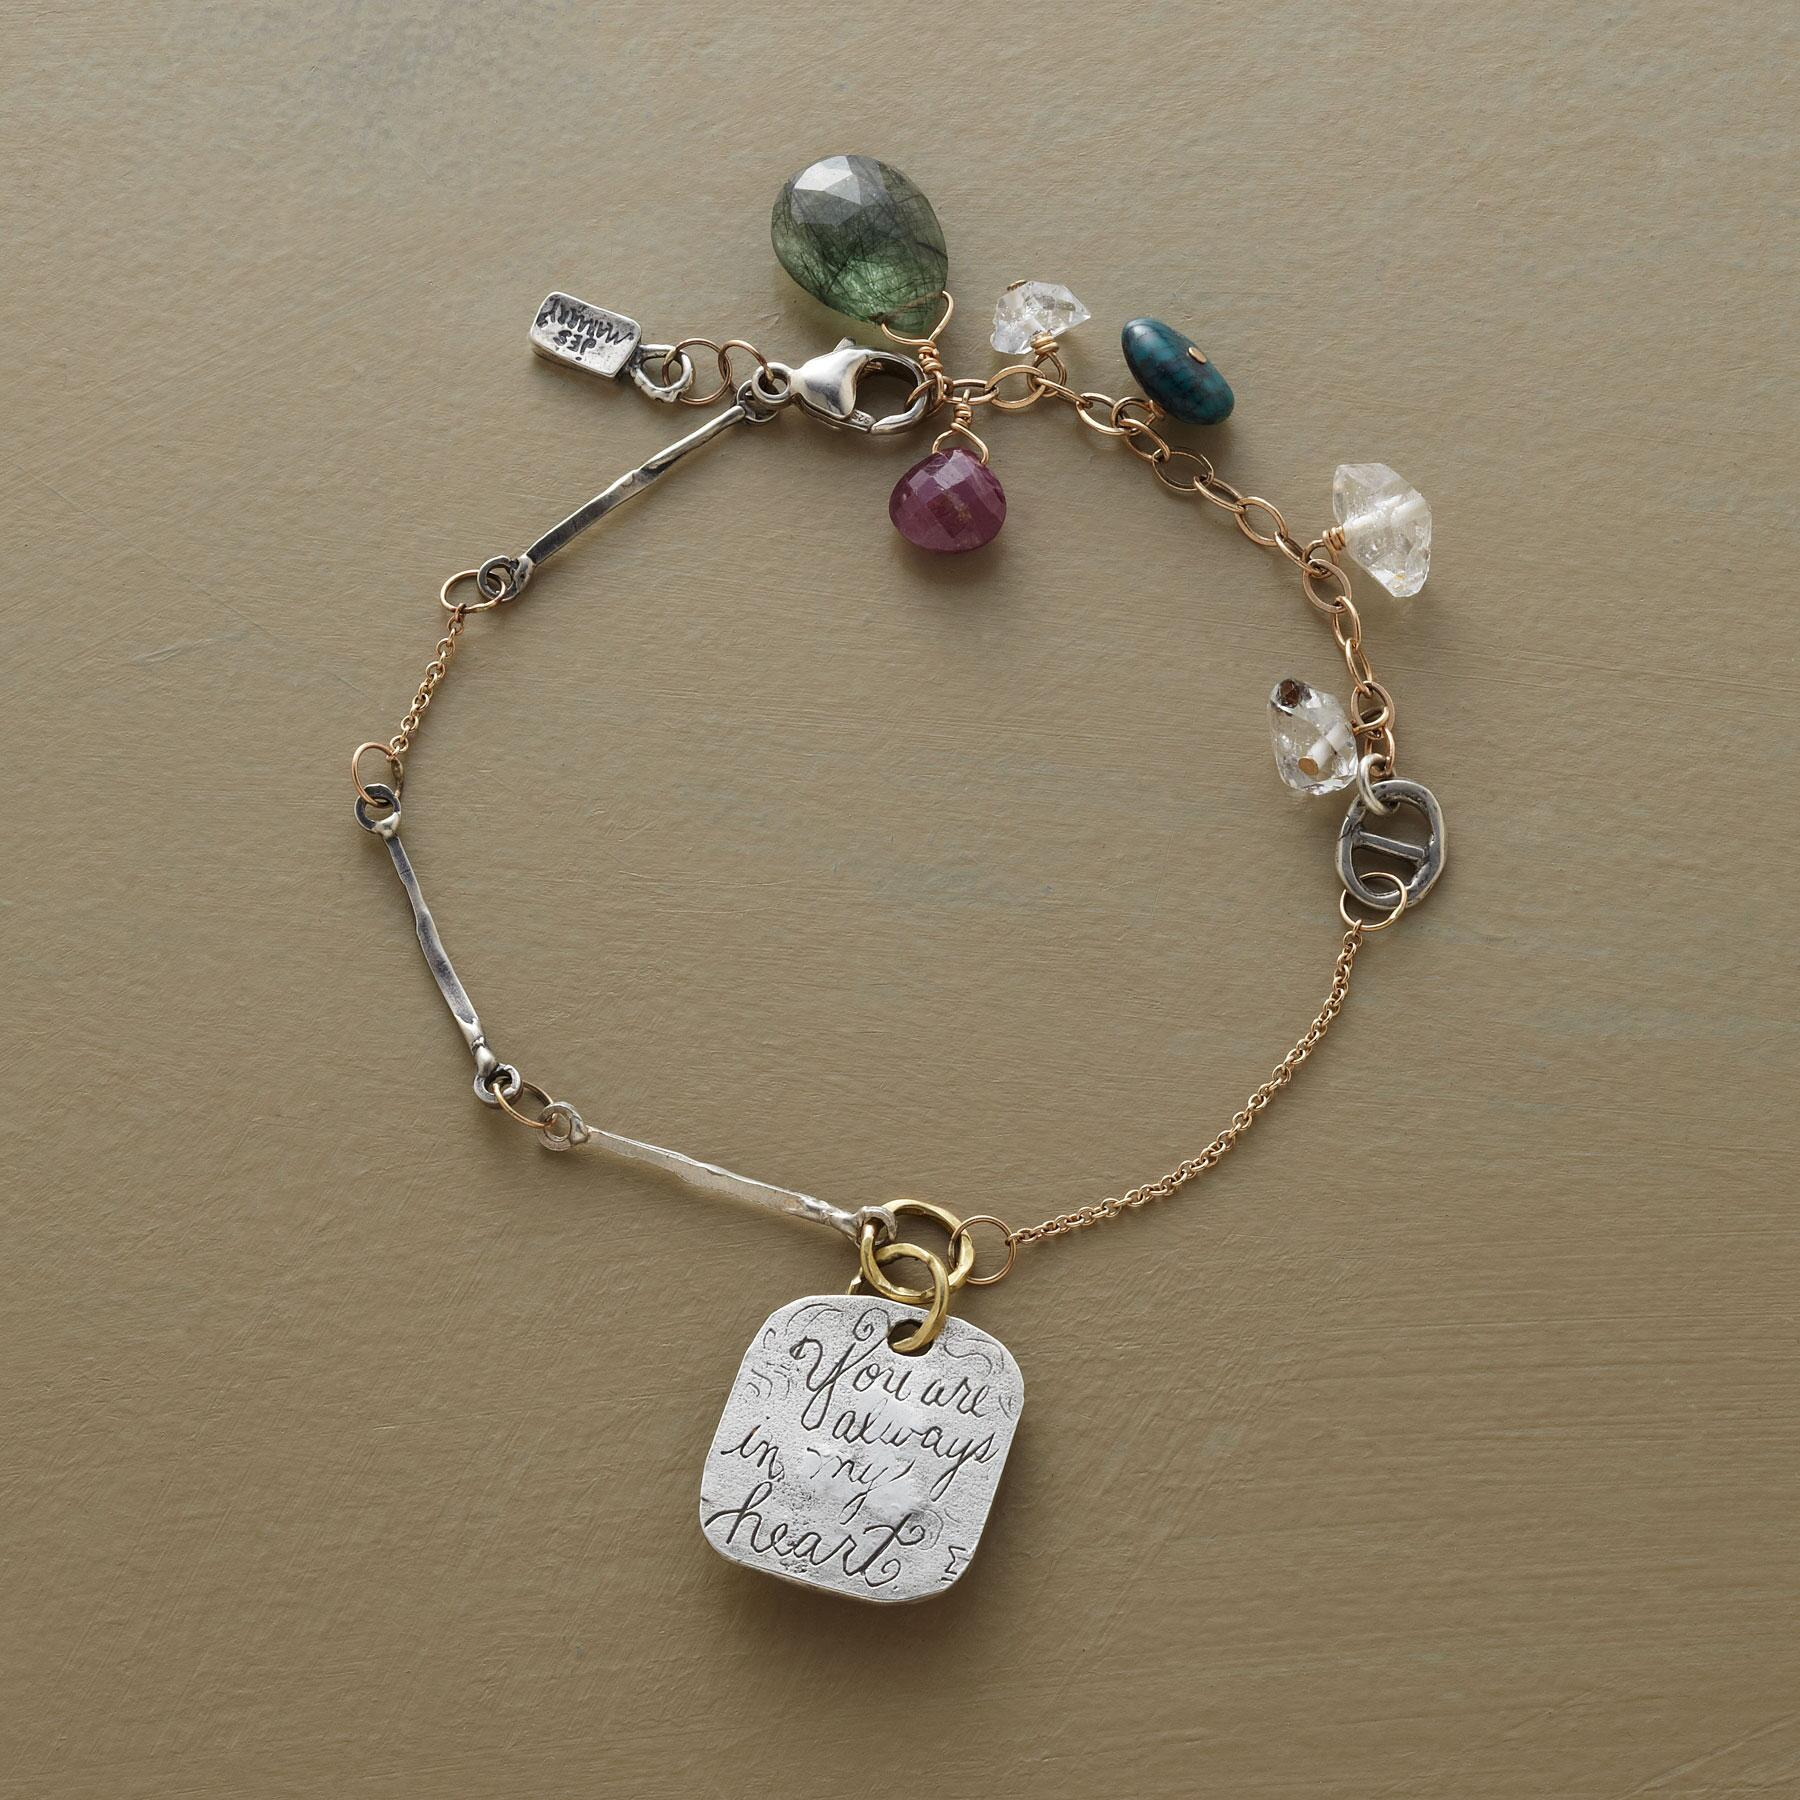 PERSONALIZED CHARMER BRACELET BY JES MAHARRY: View 2